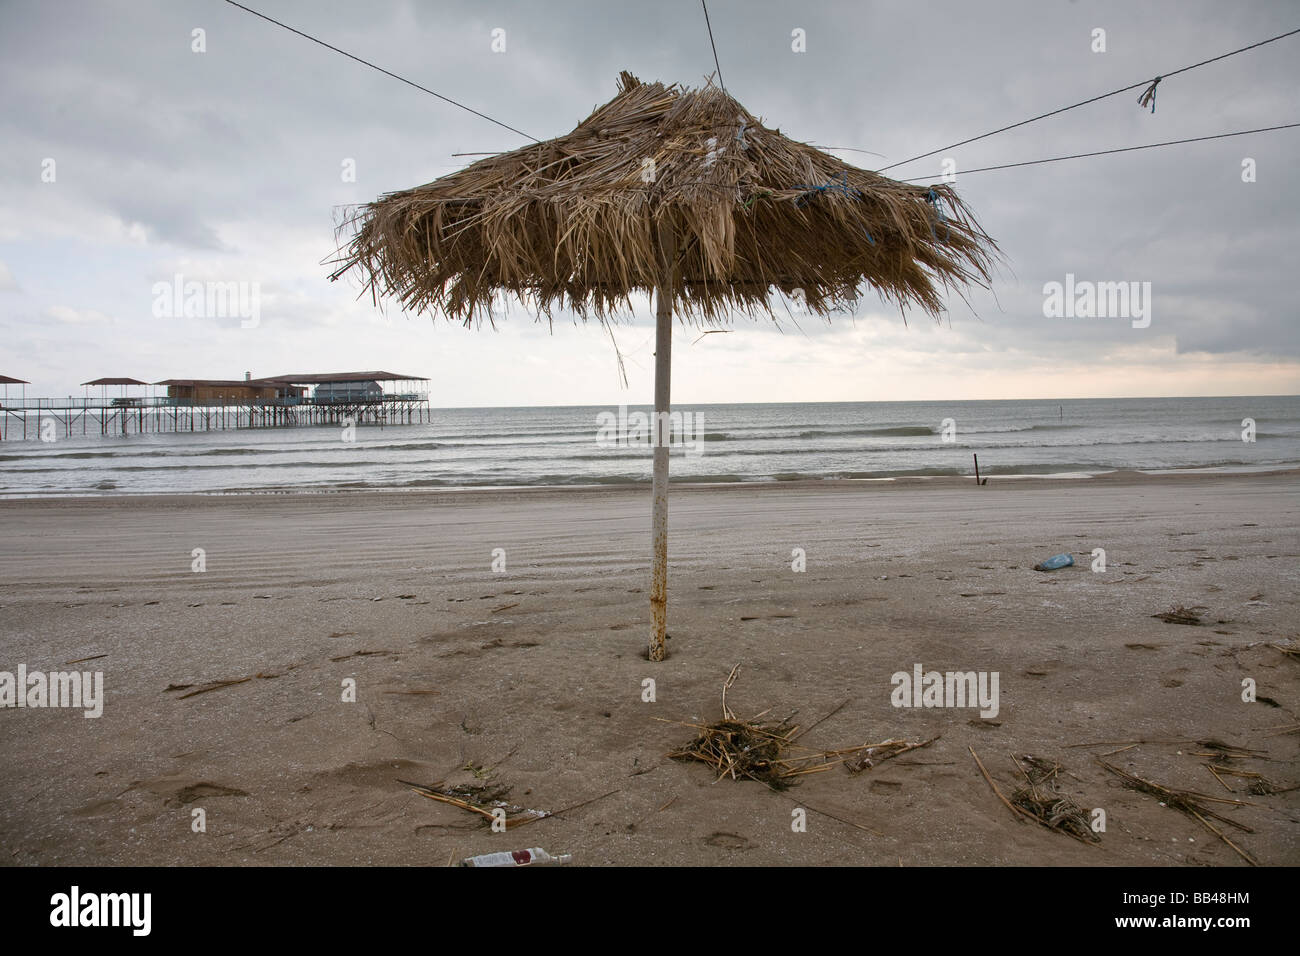 Beach umbrella on the Caspian, Baku, Azerbaijan. - Stock Image